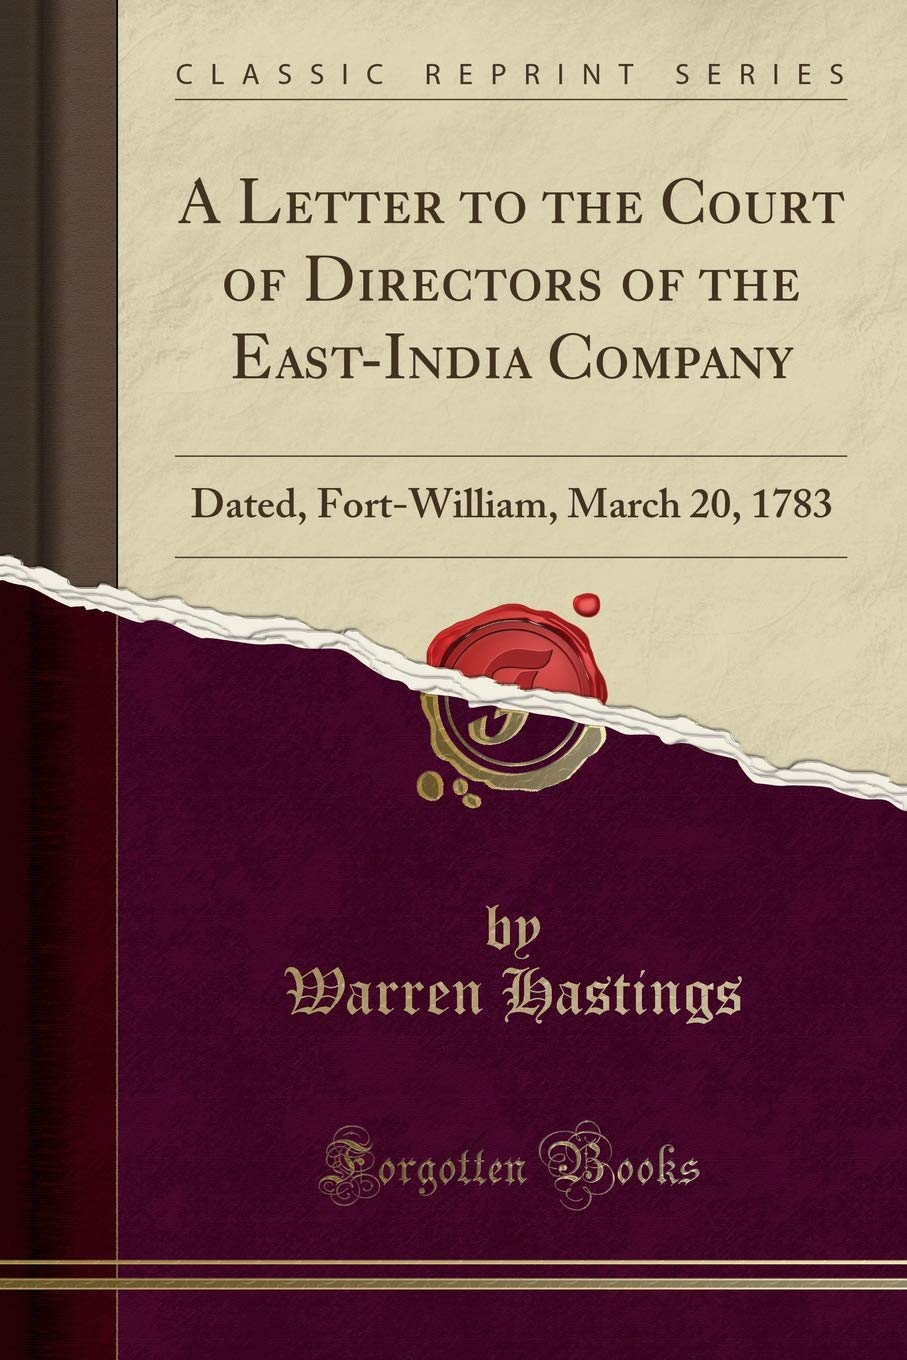 A Letter to the Court of Directors of the East-India Company: Dated